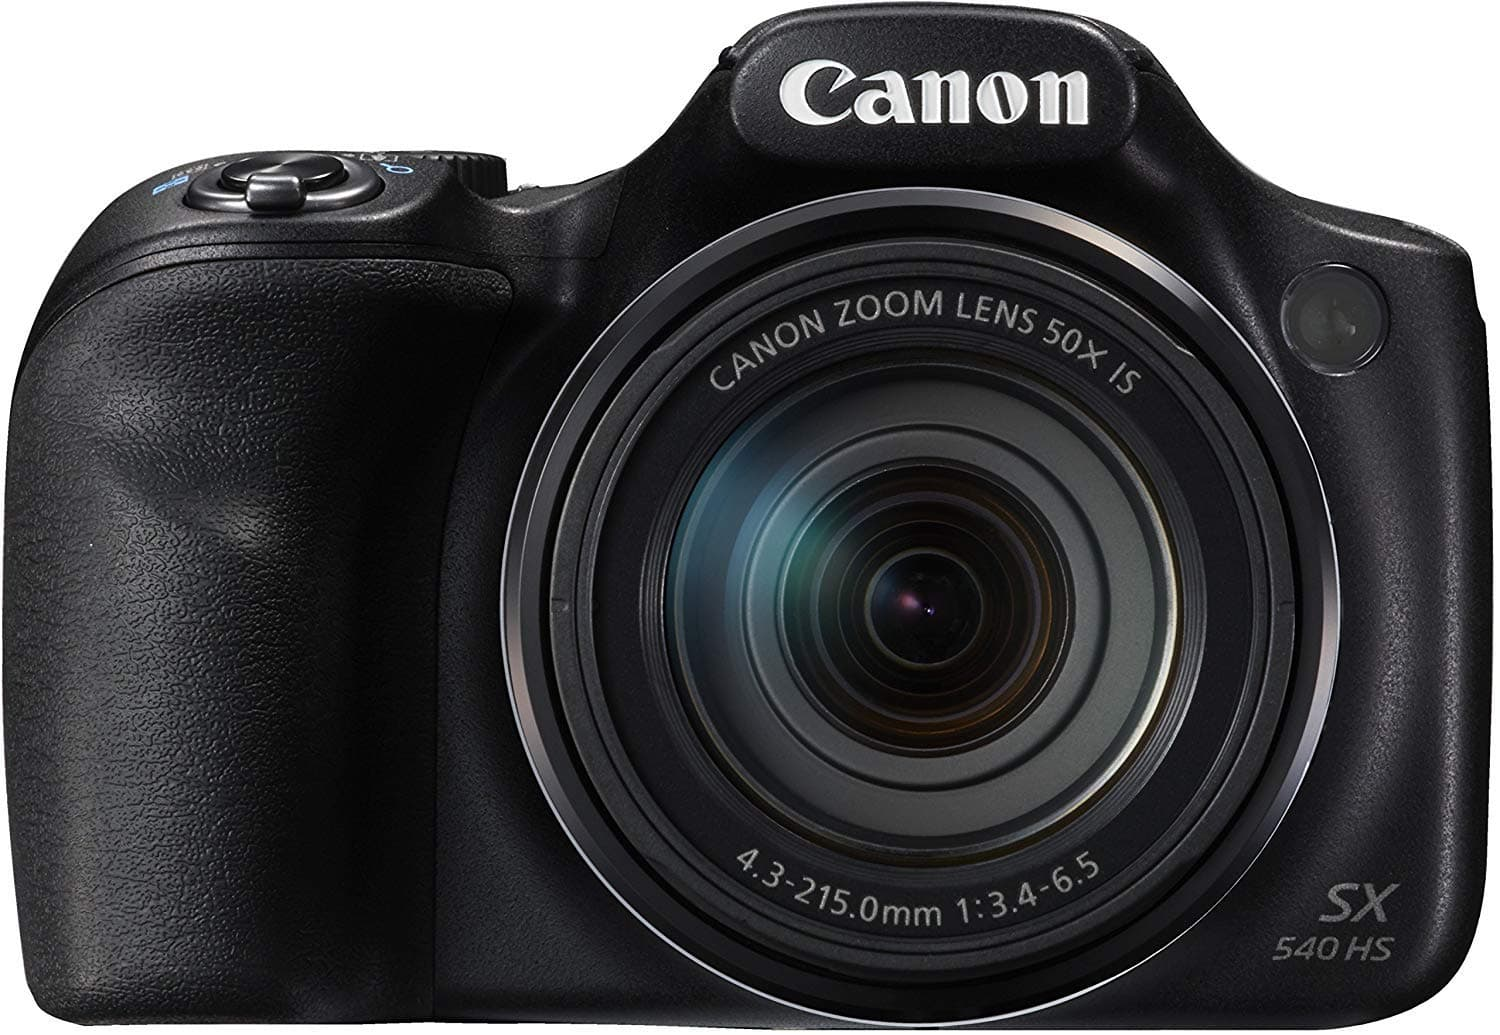 Canon SX540 frontal